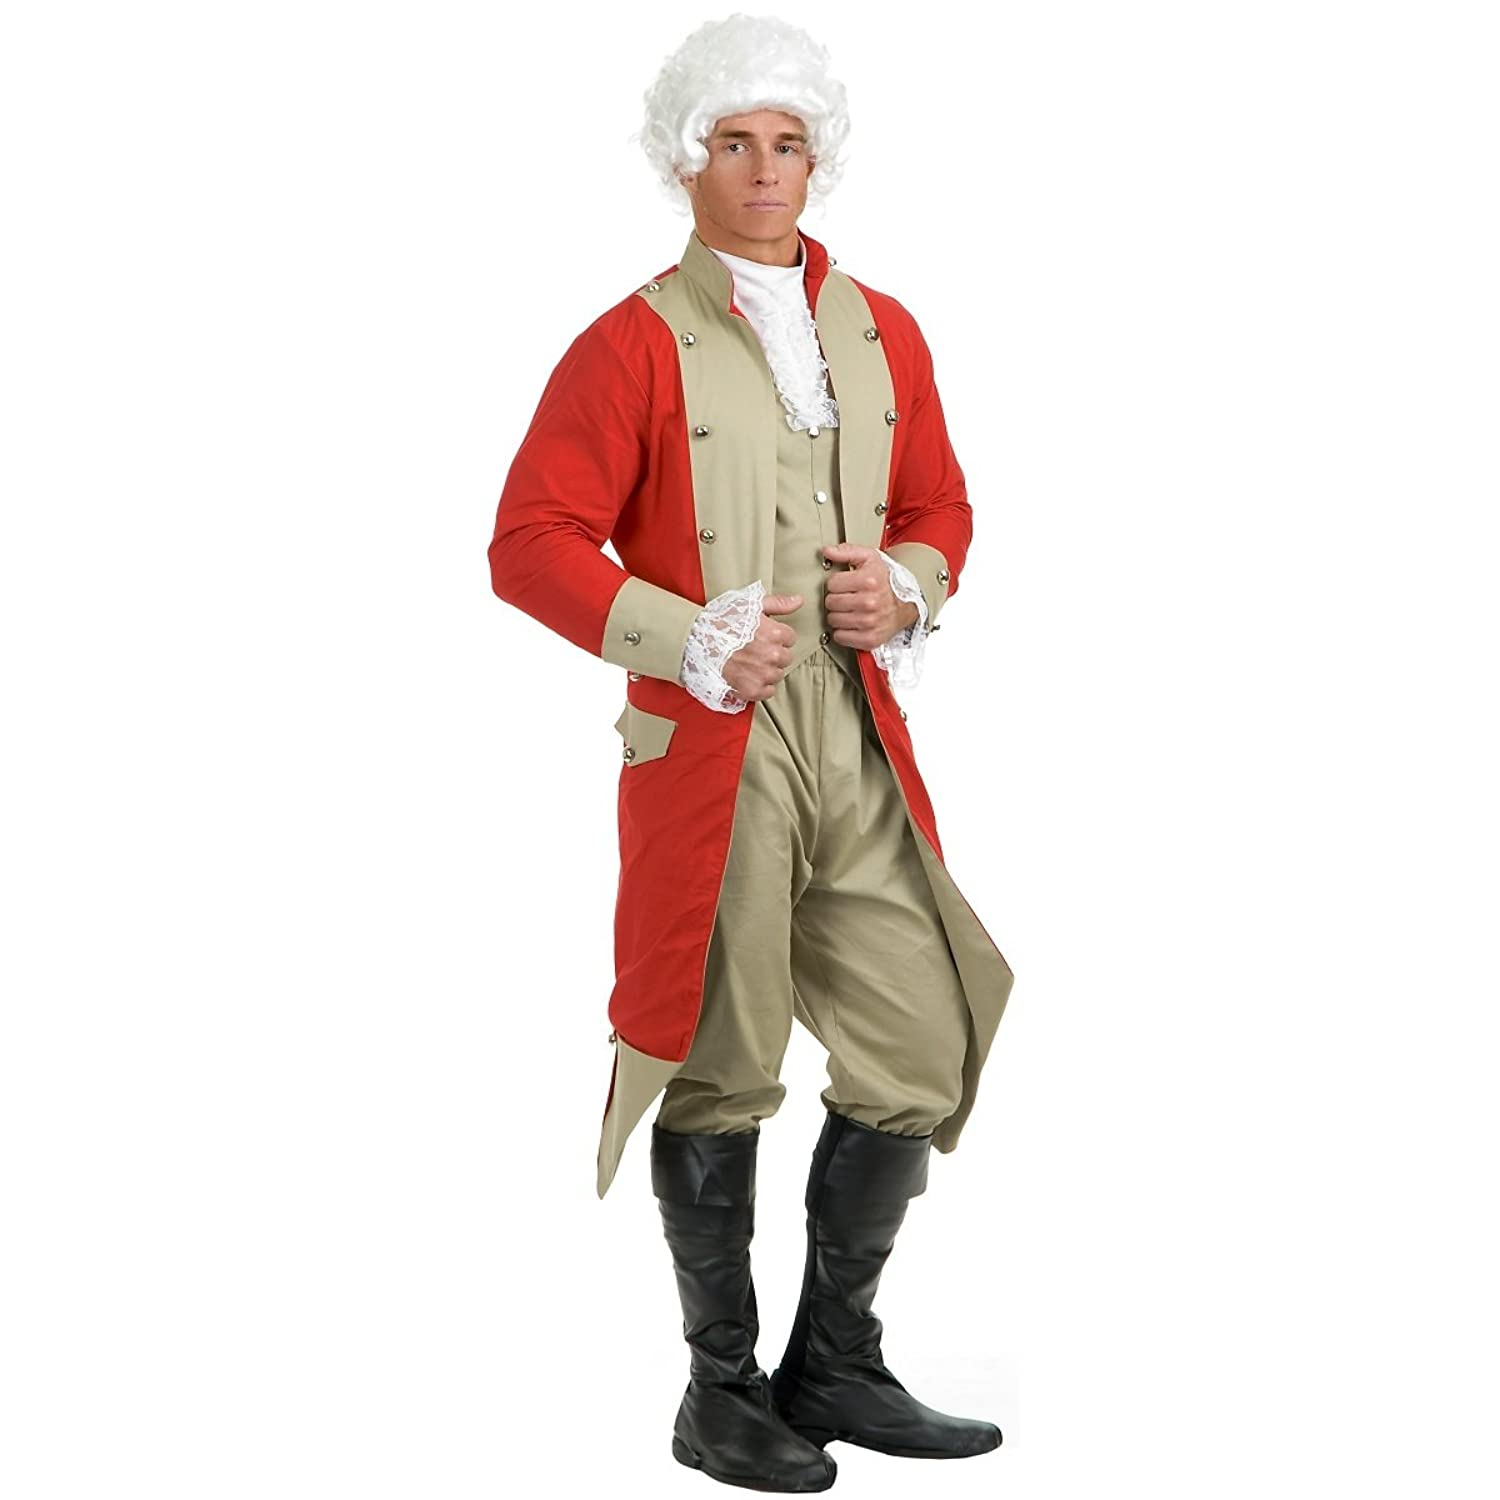 Amazon.com: Charades Men's British Red Coat Costume Set: Clothing